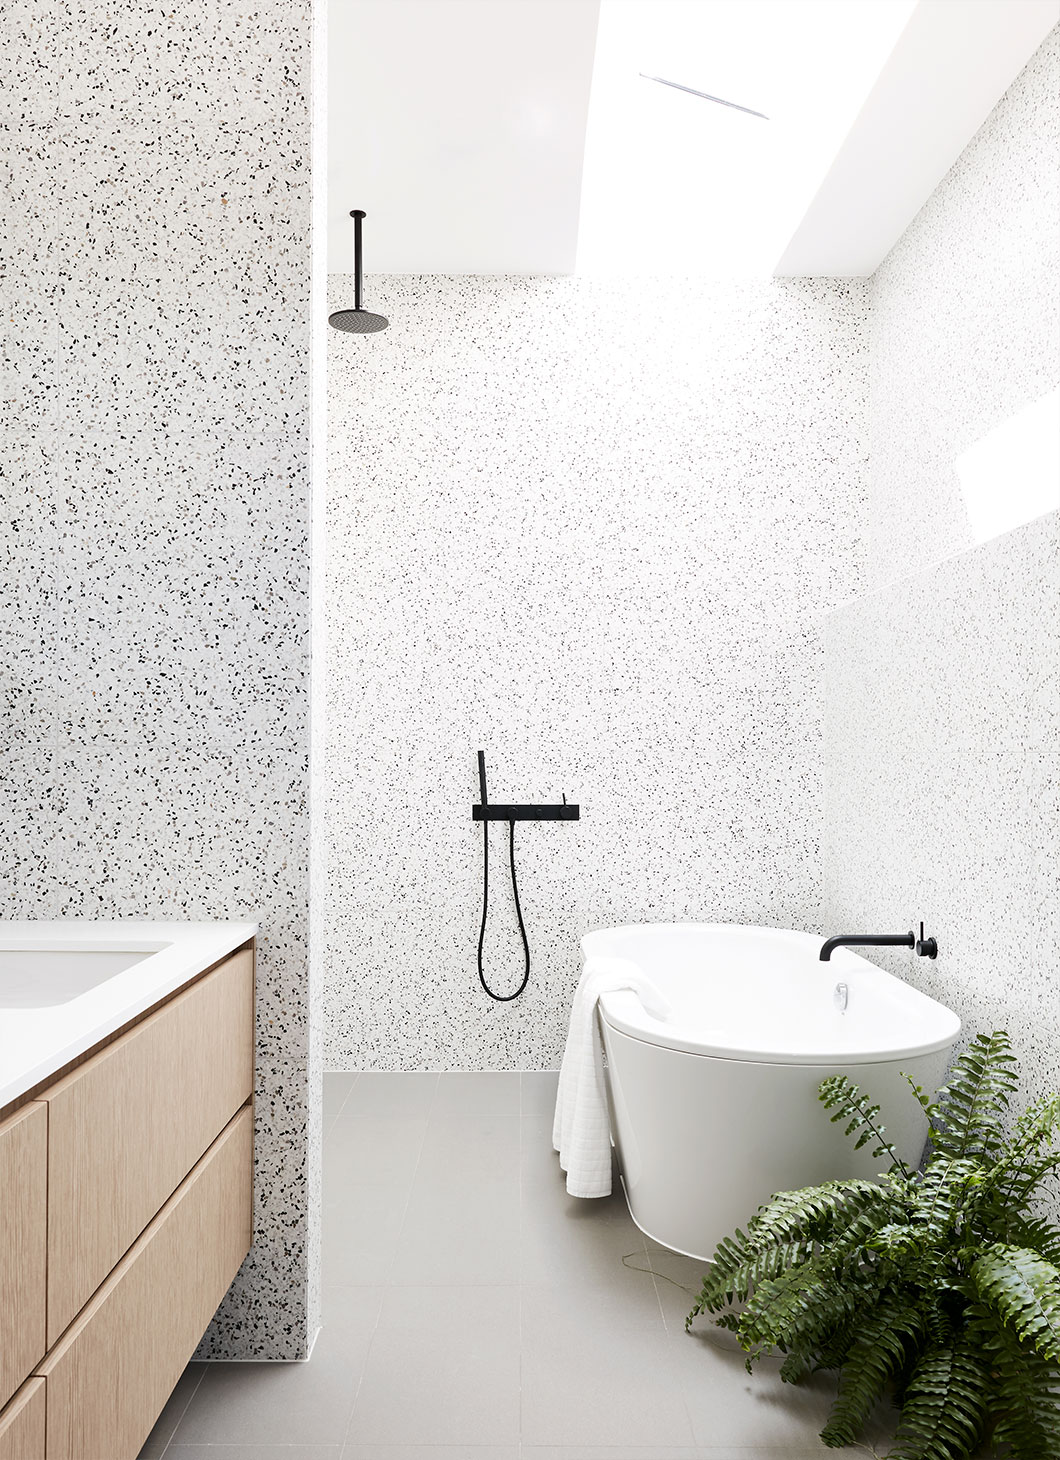 Terrazzo in use. Image from Zunica Interior Architecture & Design | Alex Reinders